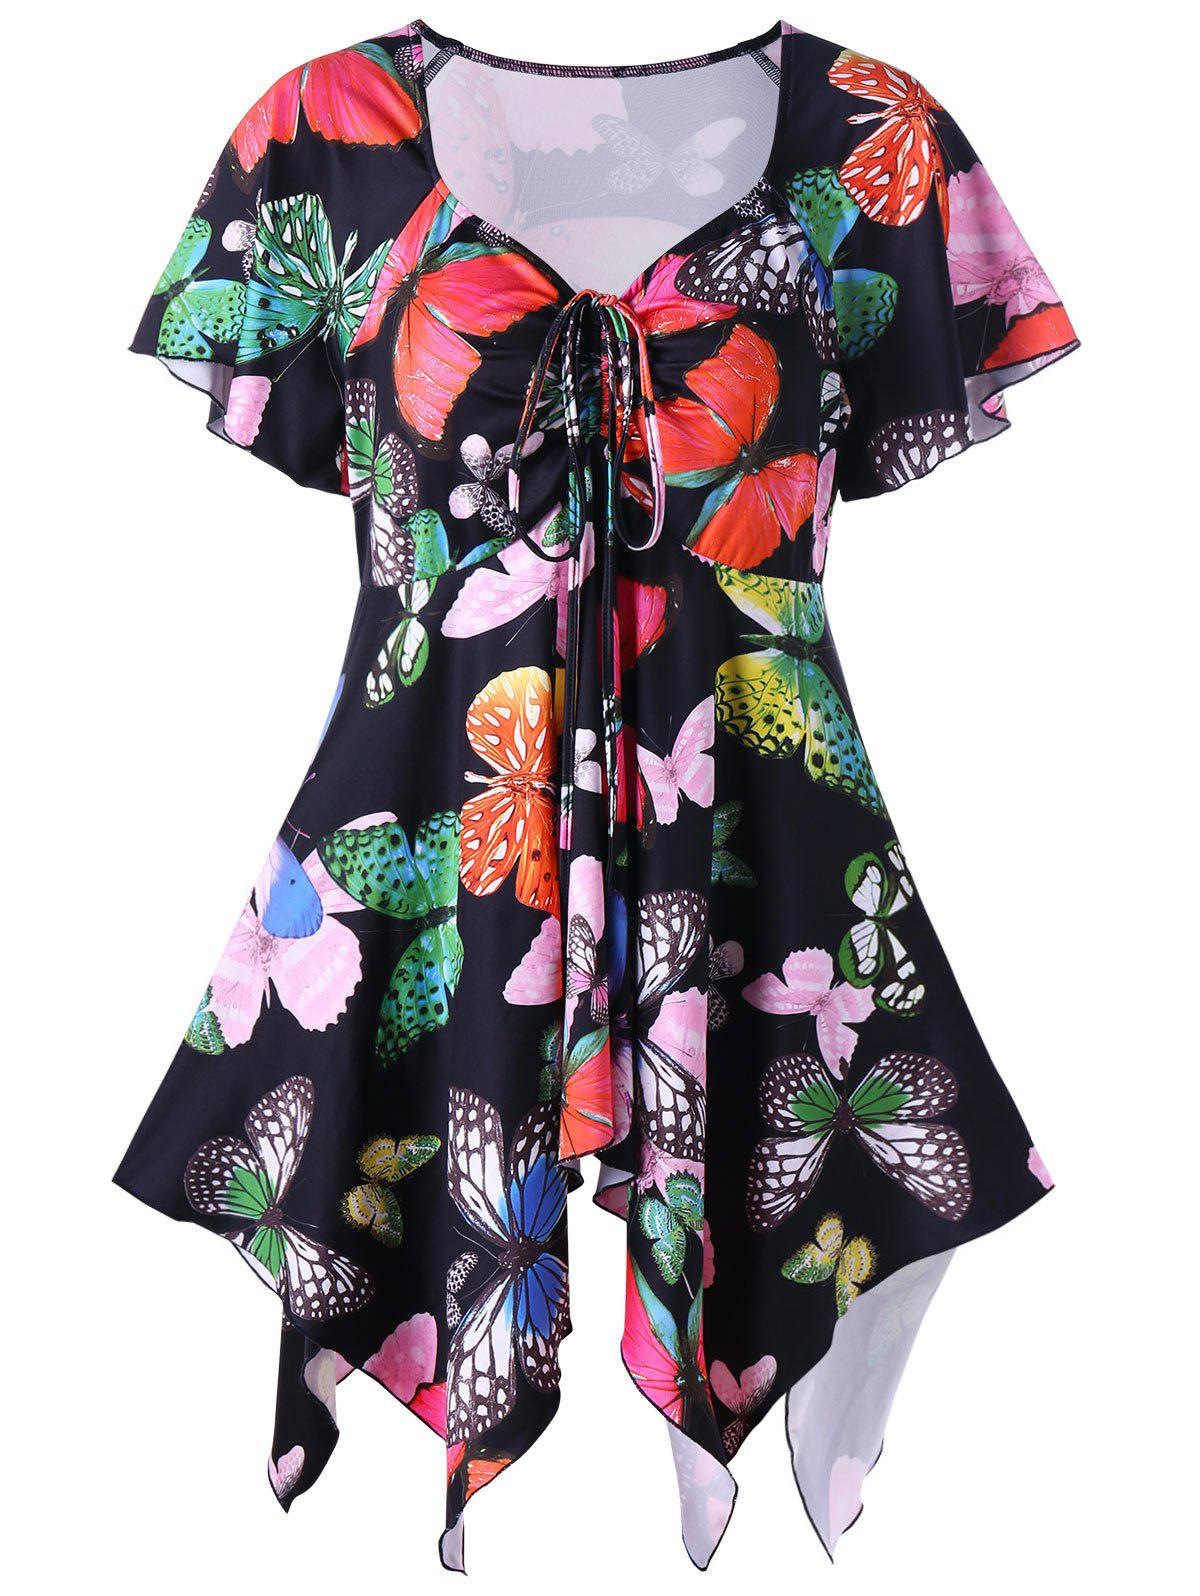 Plus Size Butterfly Pattern Handky TopWOMEN<br><br>Size: XL; Color: BLACK; Material: Polyester,Spandex; Shirt Length: Long; Sleeve Length: Short; Collar: Sweetheart Neck; Style: Casual; Season: Summer; Pattern Type: Insect; Weight: 0.2800kg; Package Contents: 1 x Top;